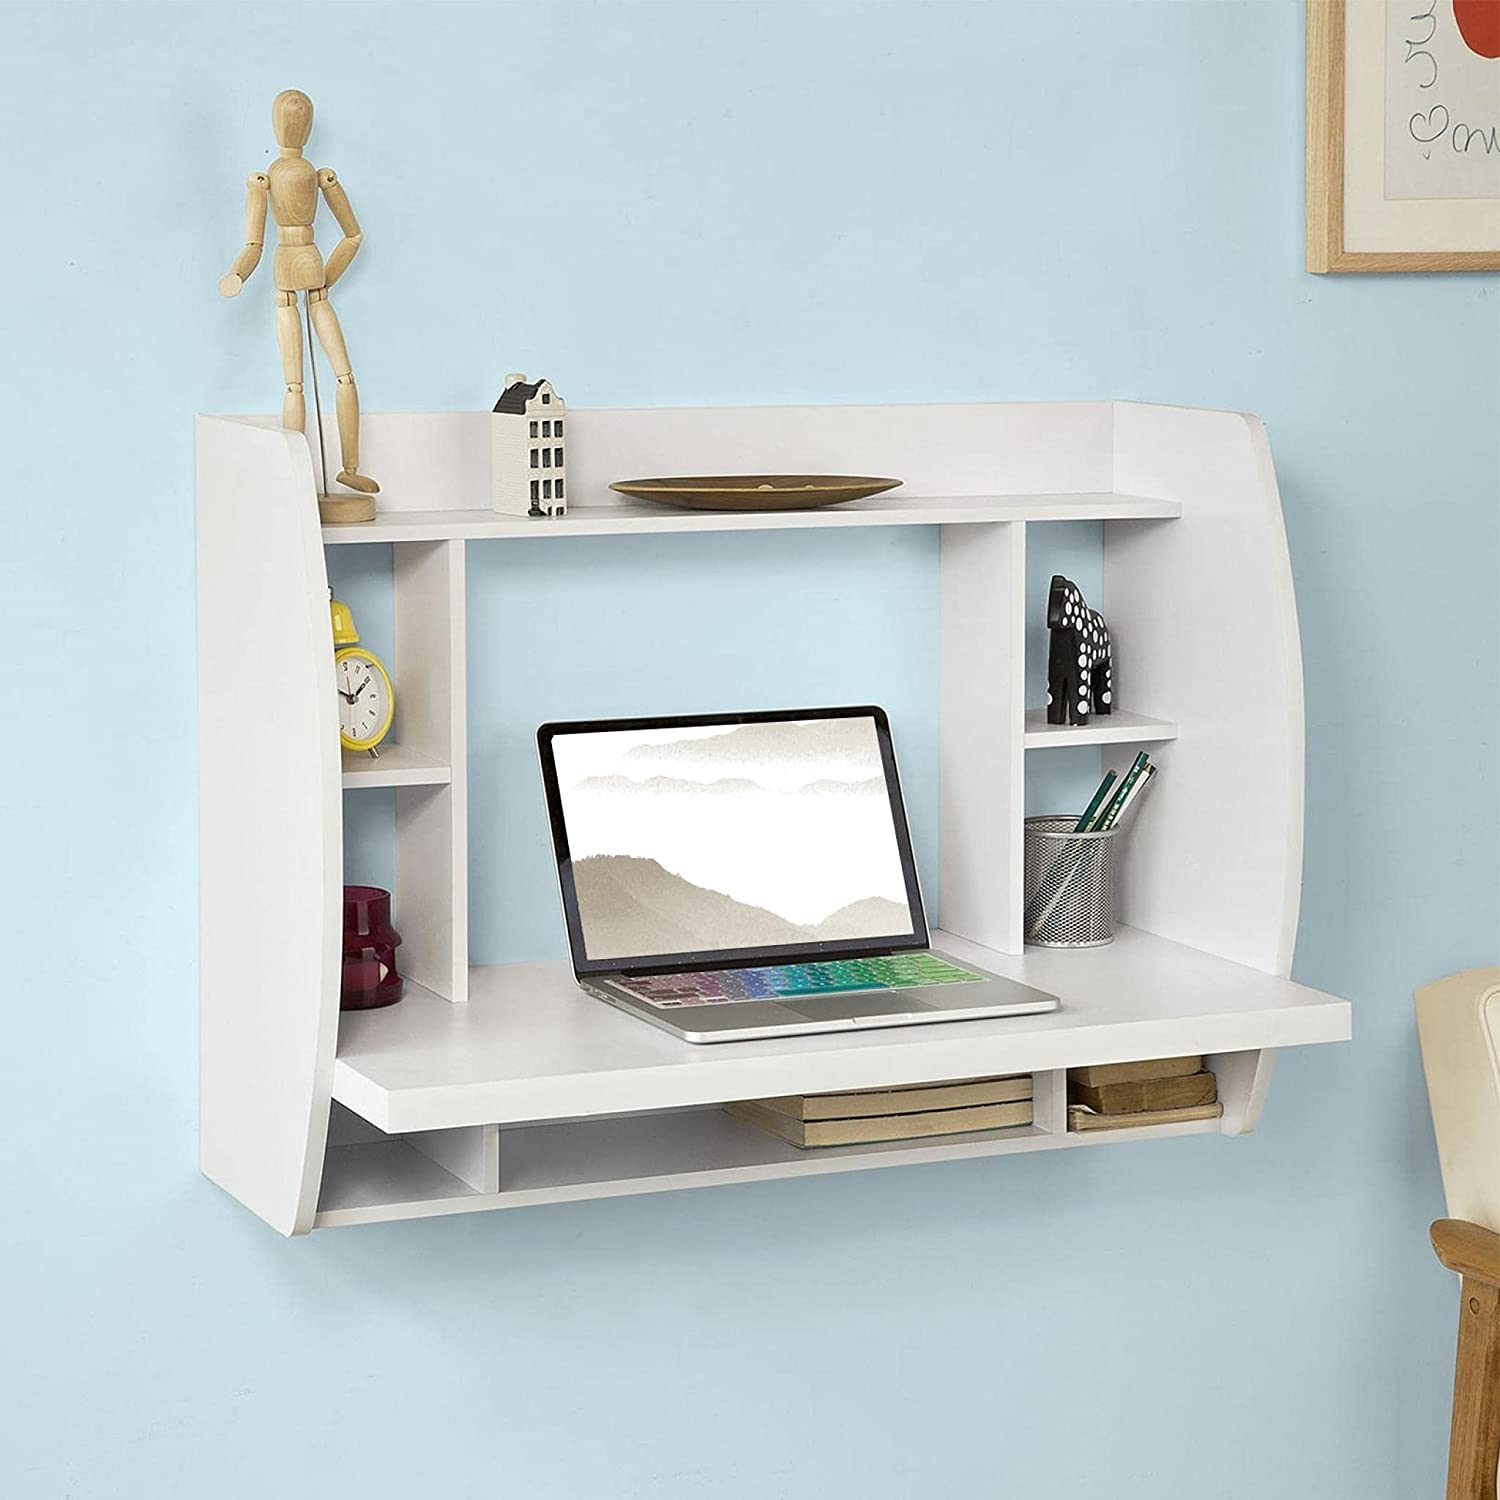 Huokan Wall Max 82% OFF Mounted Floating Computer Shelves Desk Superlatite with Storage